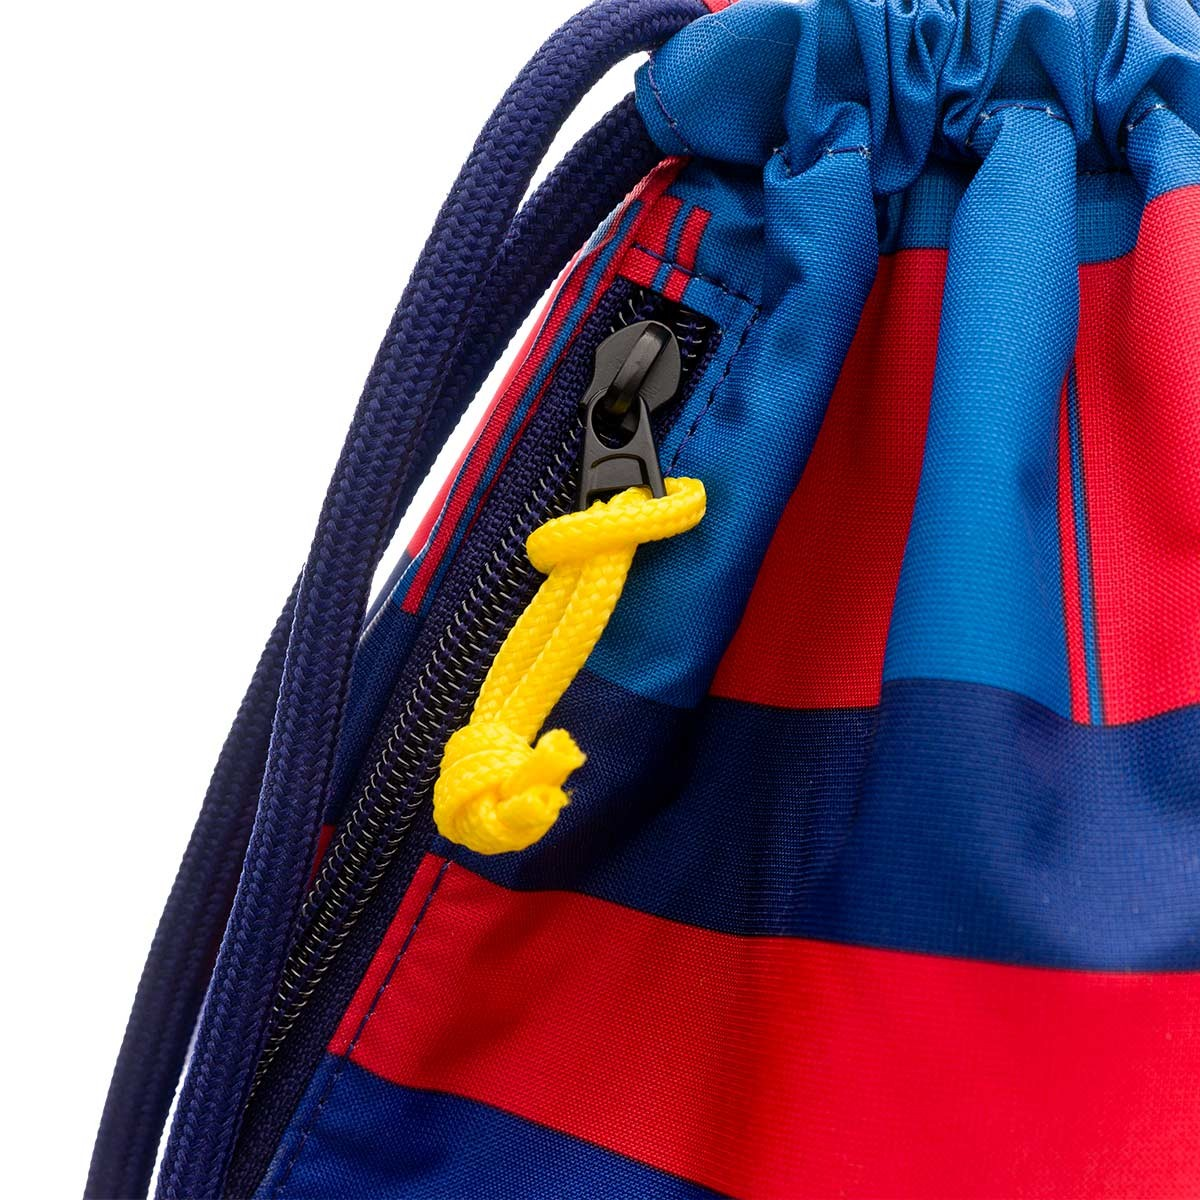 Backpack Nike Gymsack FC Barcelona Stadium 20 years Storm red-Storm  blue-Tour yellow - Leaked soccer 0c1d33f398e68